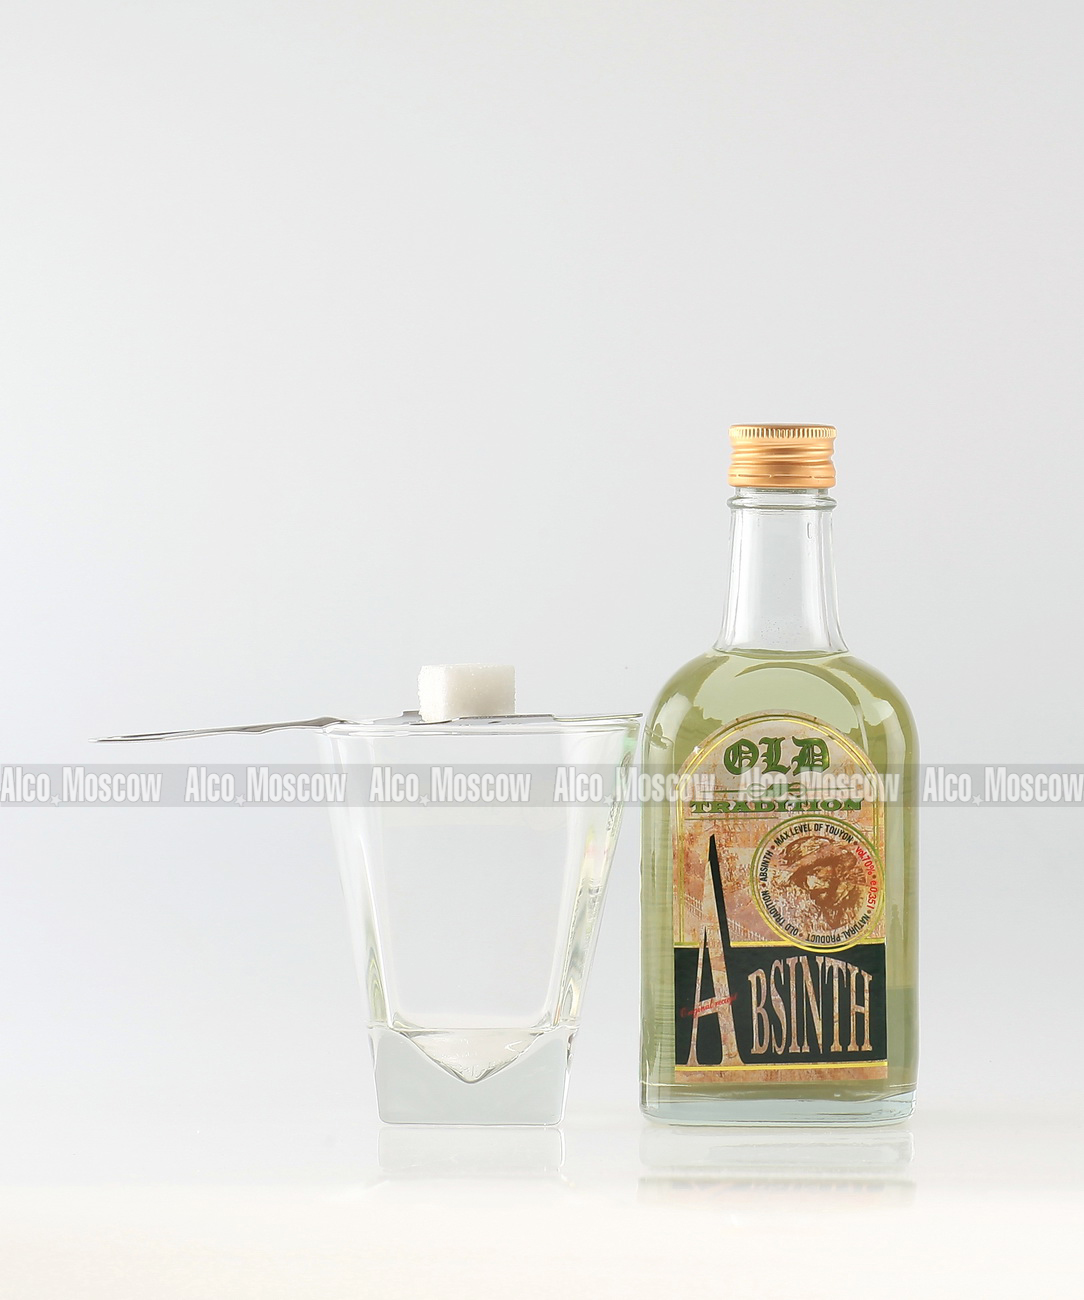 Old Tradition Old Tradition 350 ml абсент Олд Традишн 0.35 л